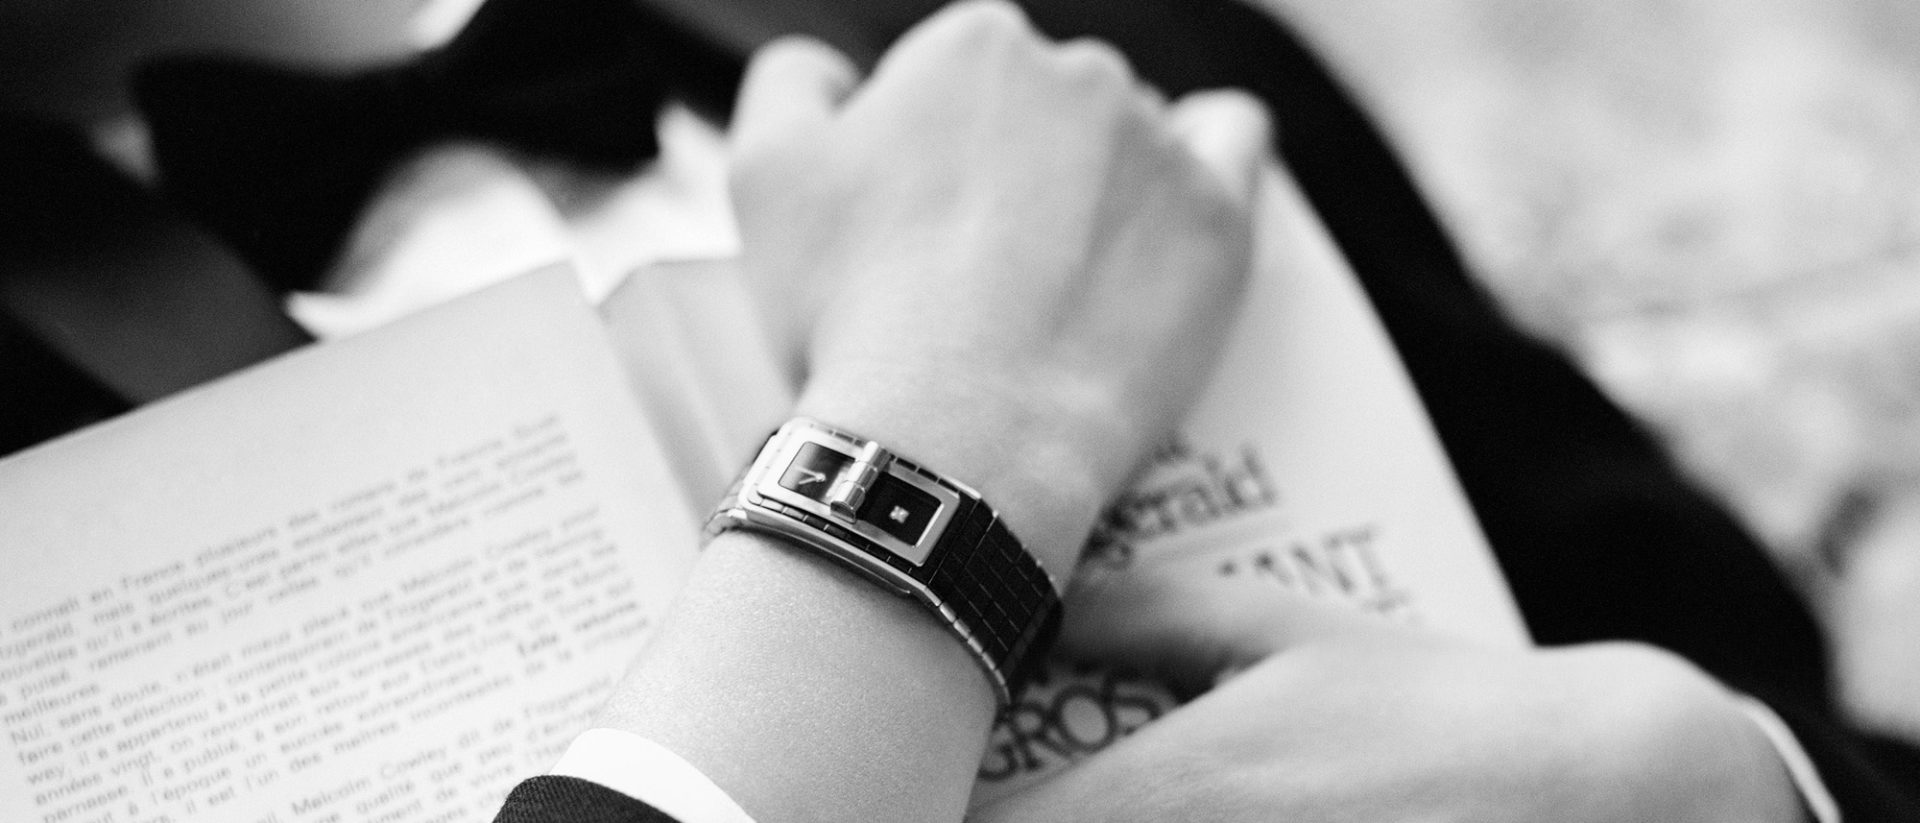 Chanel-Banner-Hall-of-Time-PageCollection-2800x1200Chanel-Banner-Hall-of-Time-PageCollection-2800x1200